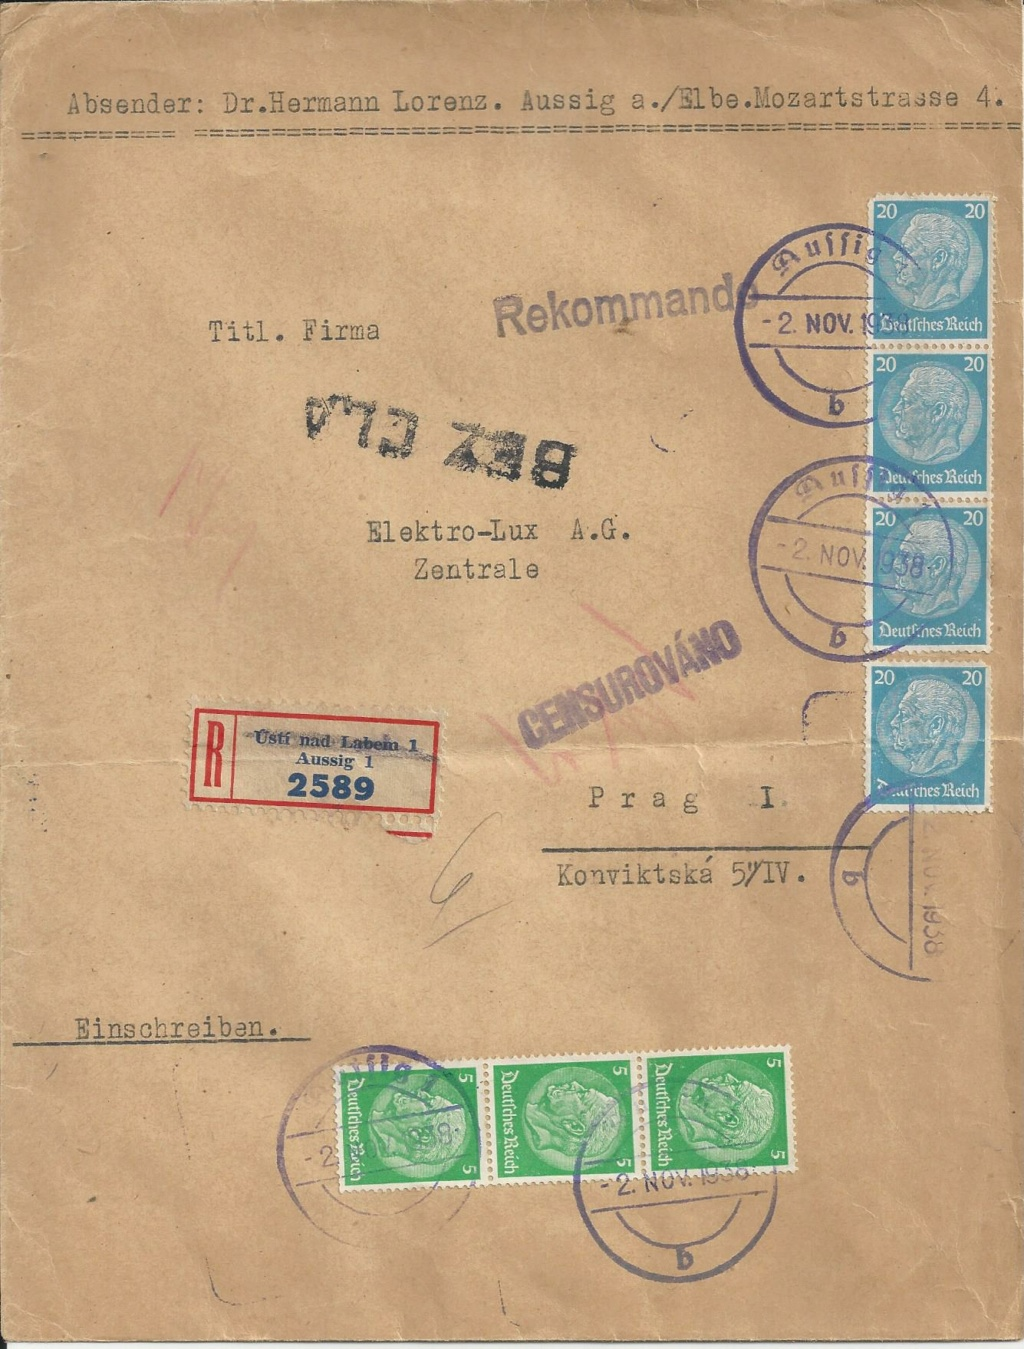 Sudetenland Brief, 1938, Bild_826